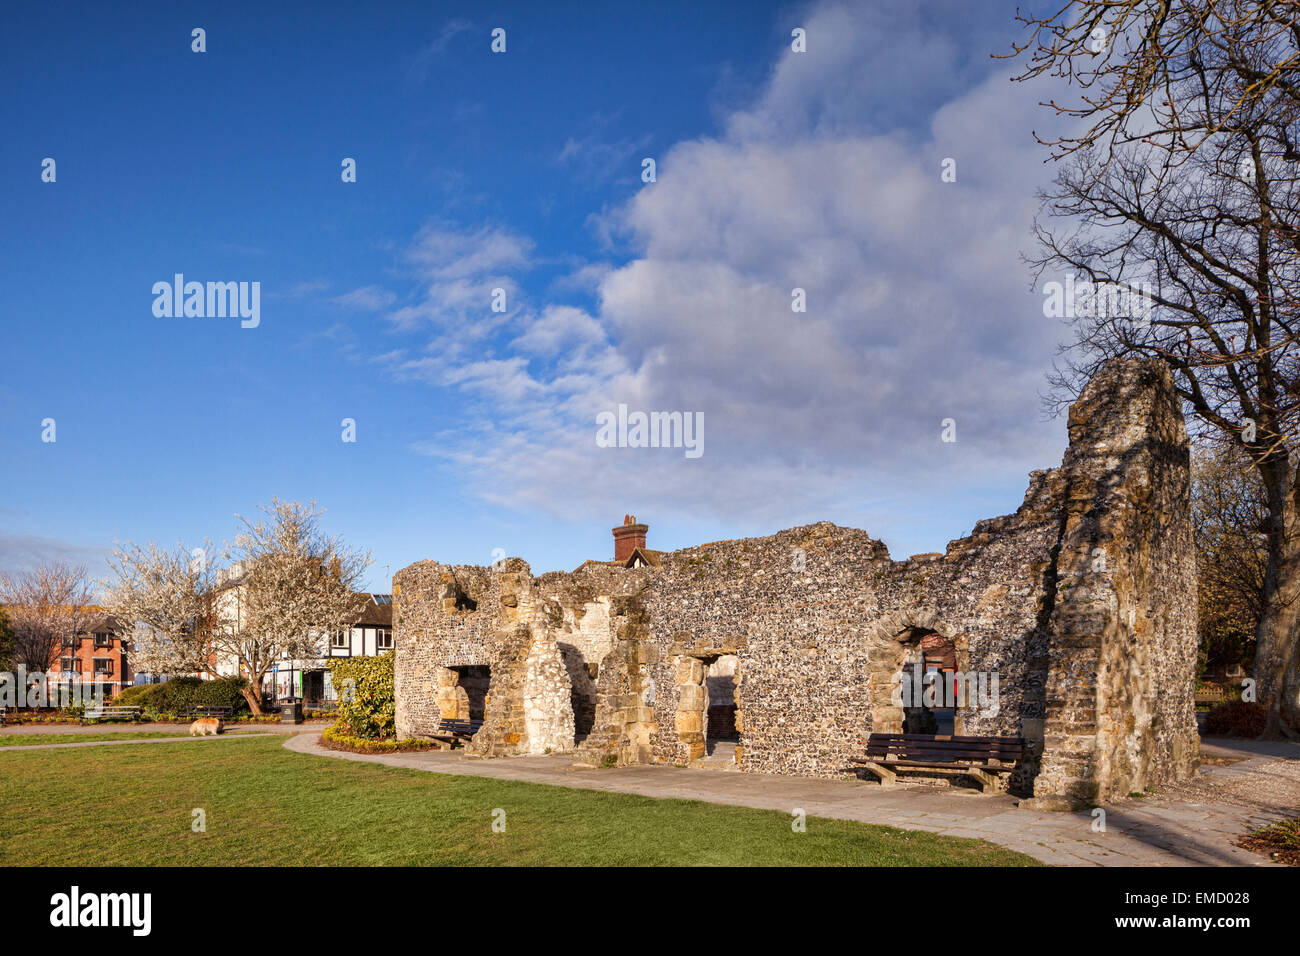 Ruin of Blackfriars Dominican Friary, Arundel, Sussex, England, UK, on a fine spring morning. - Stock Image